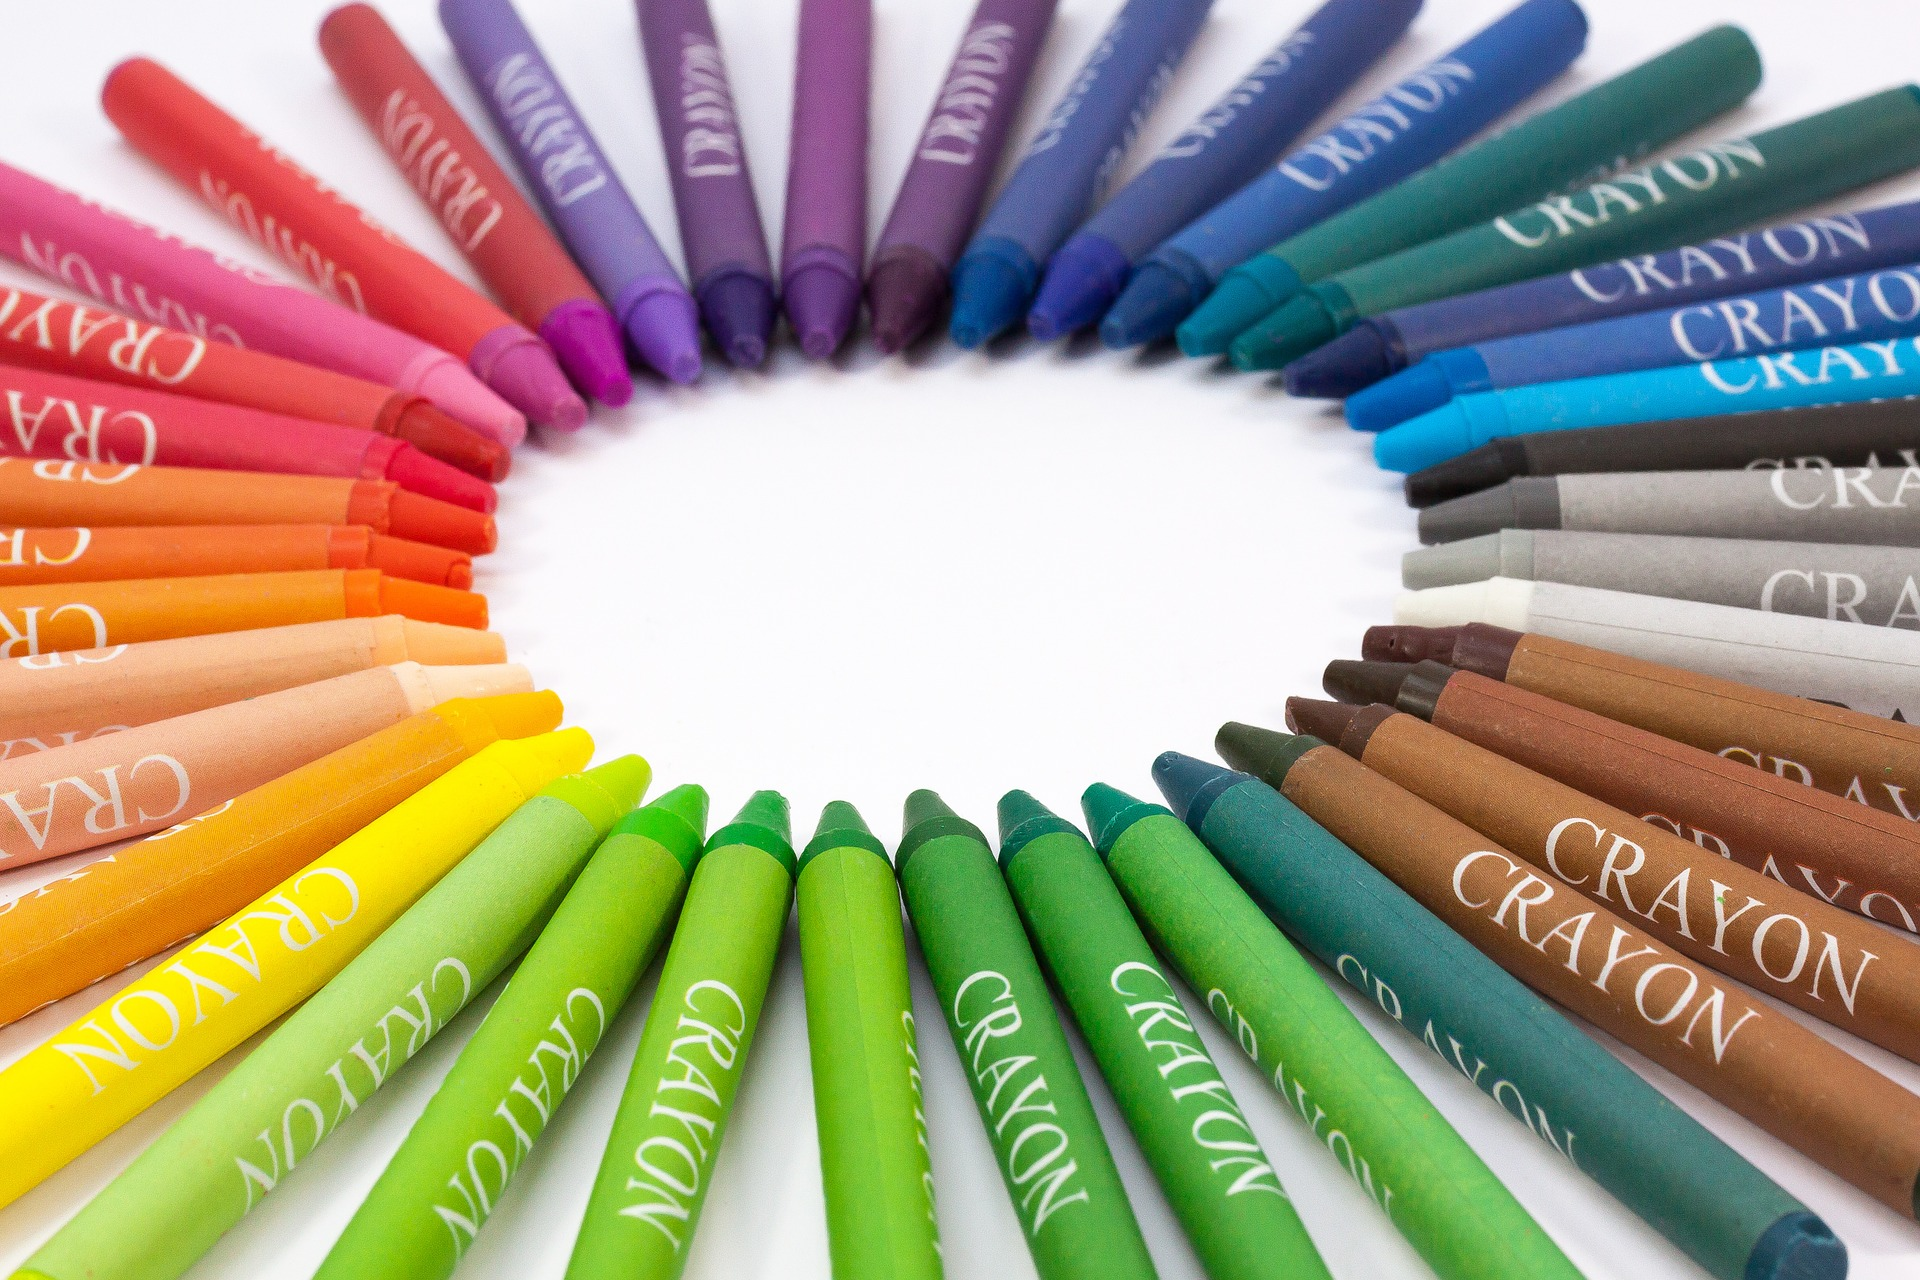 Image of multicolored crayons.